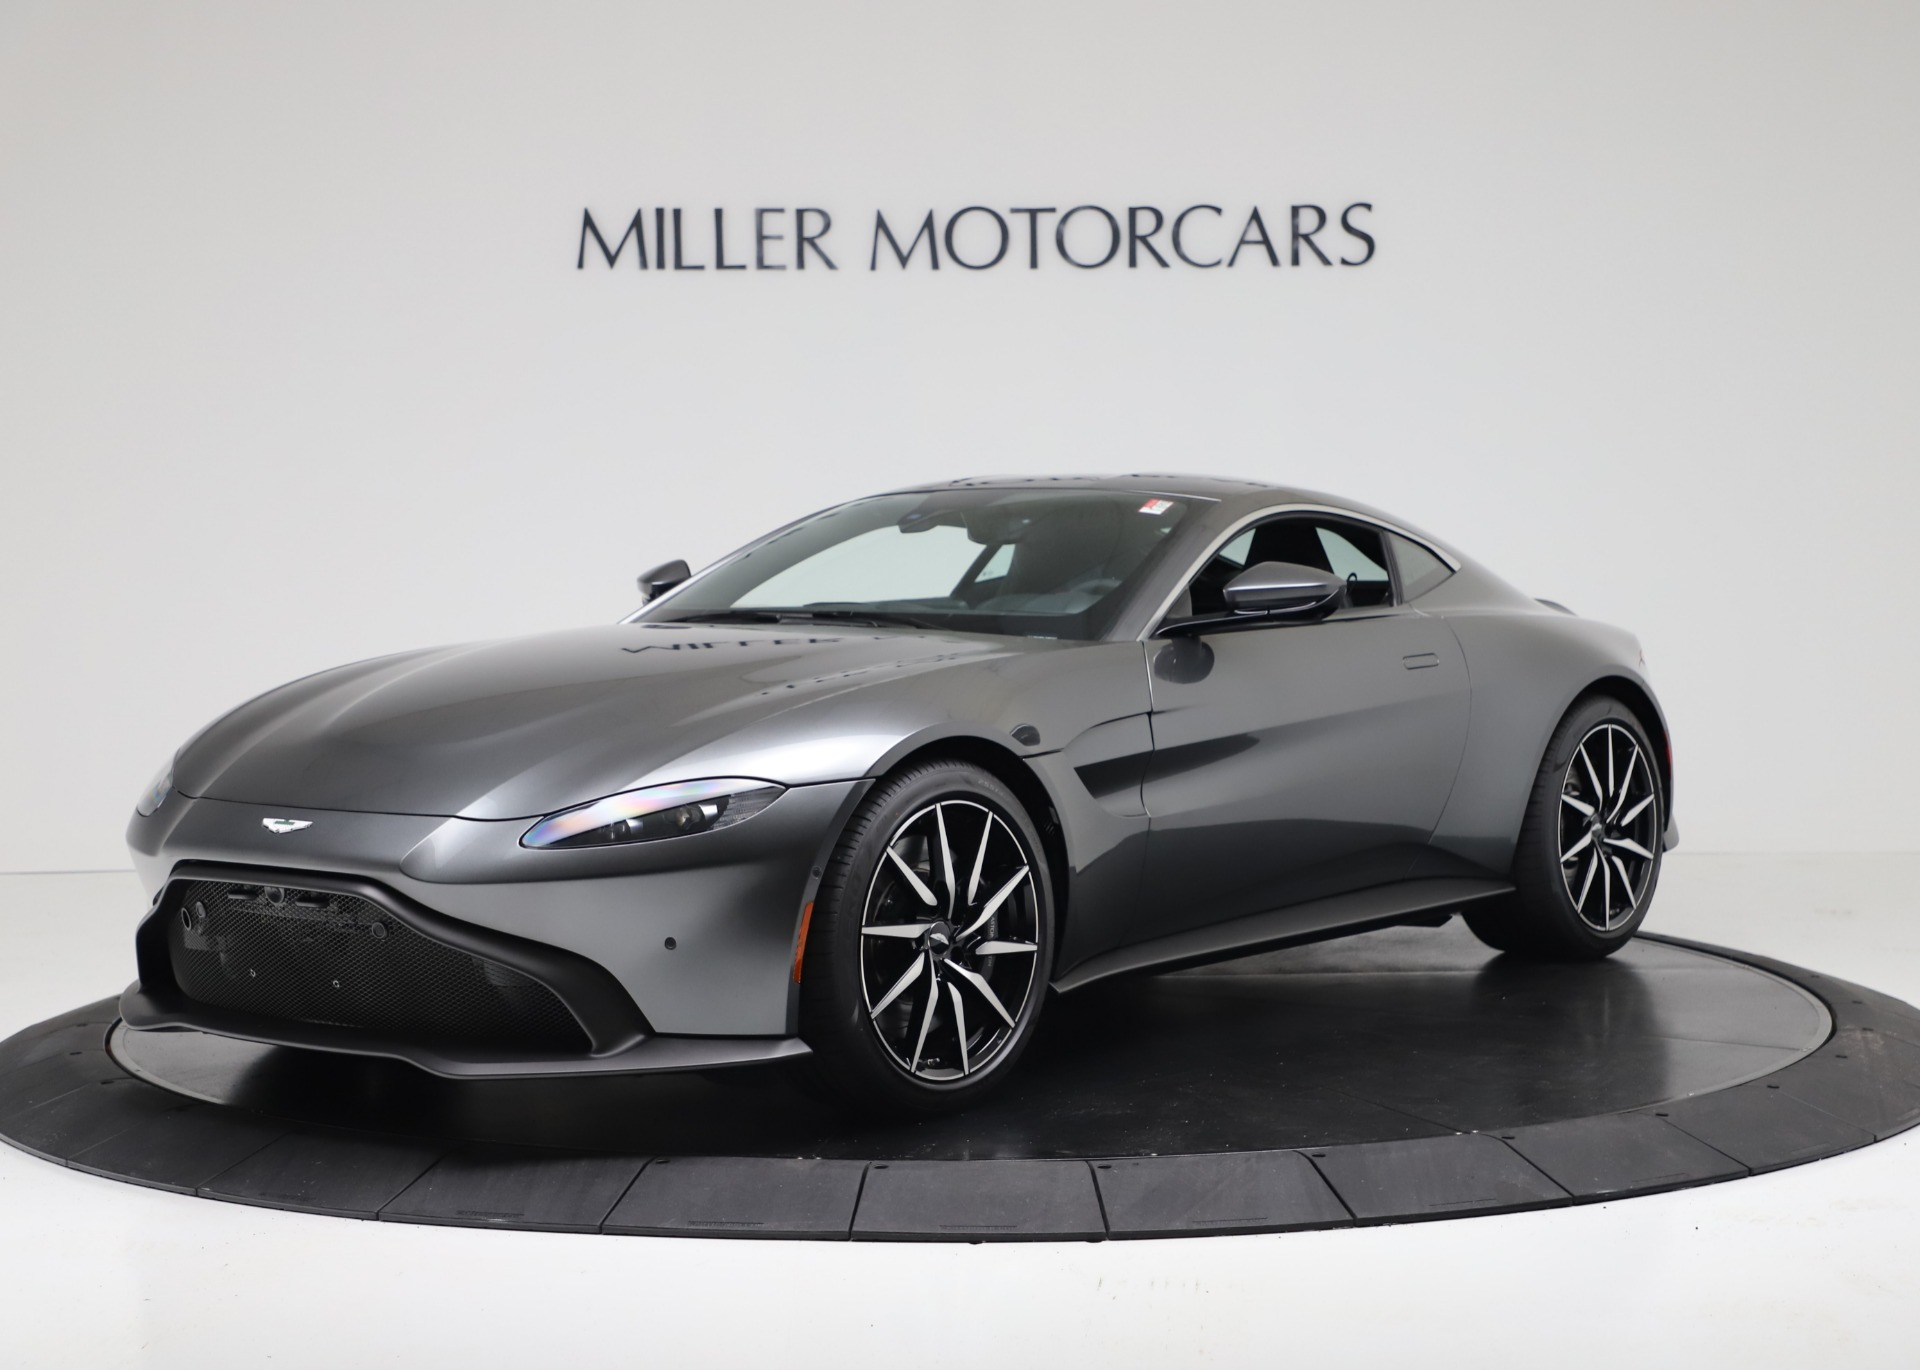 Pre Owned 2020 Aston Martin Vantage Coupe For Sale Special Pricing Mclaren Greenwich Stock 7790